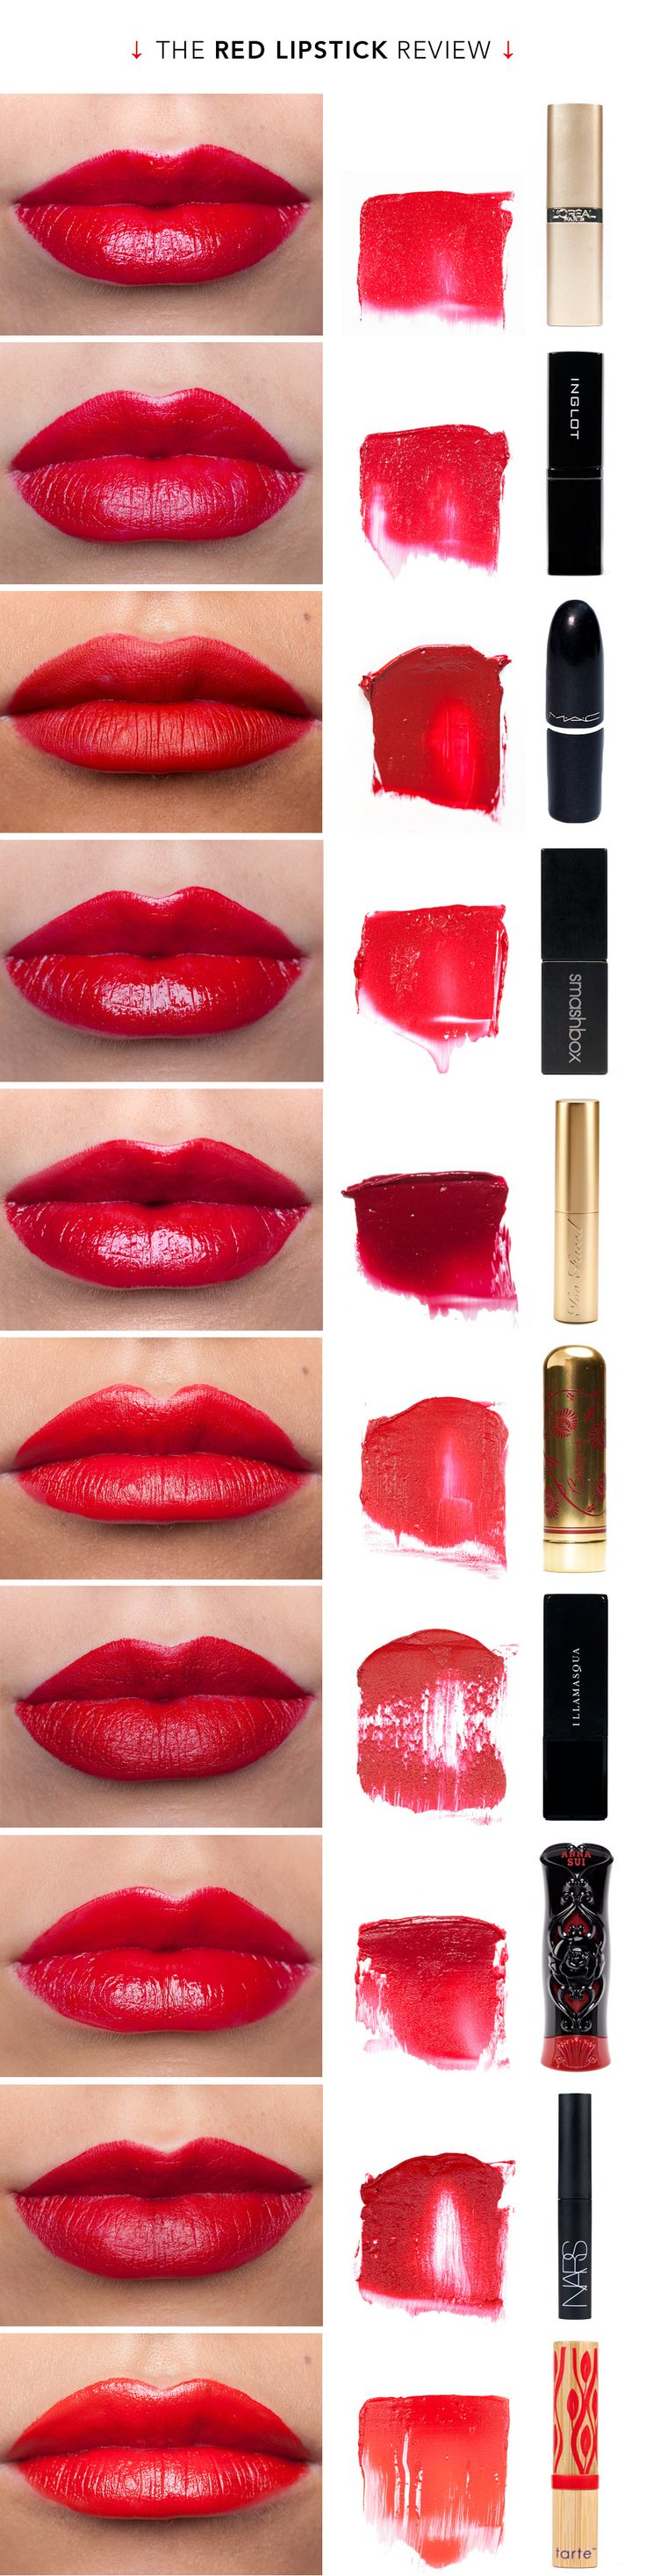 The Red Lipstick Review | Red Lipsticks, Lipsticks and ...